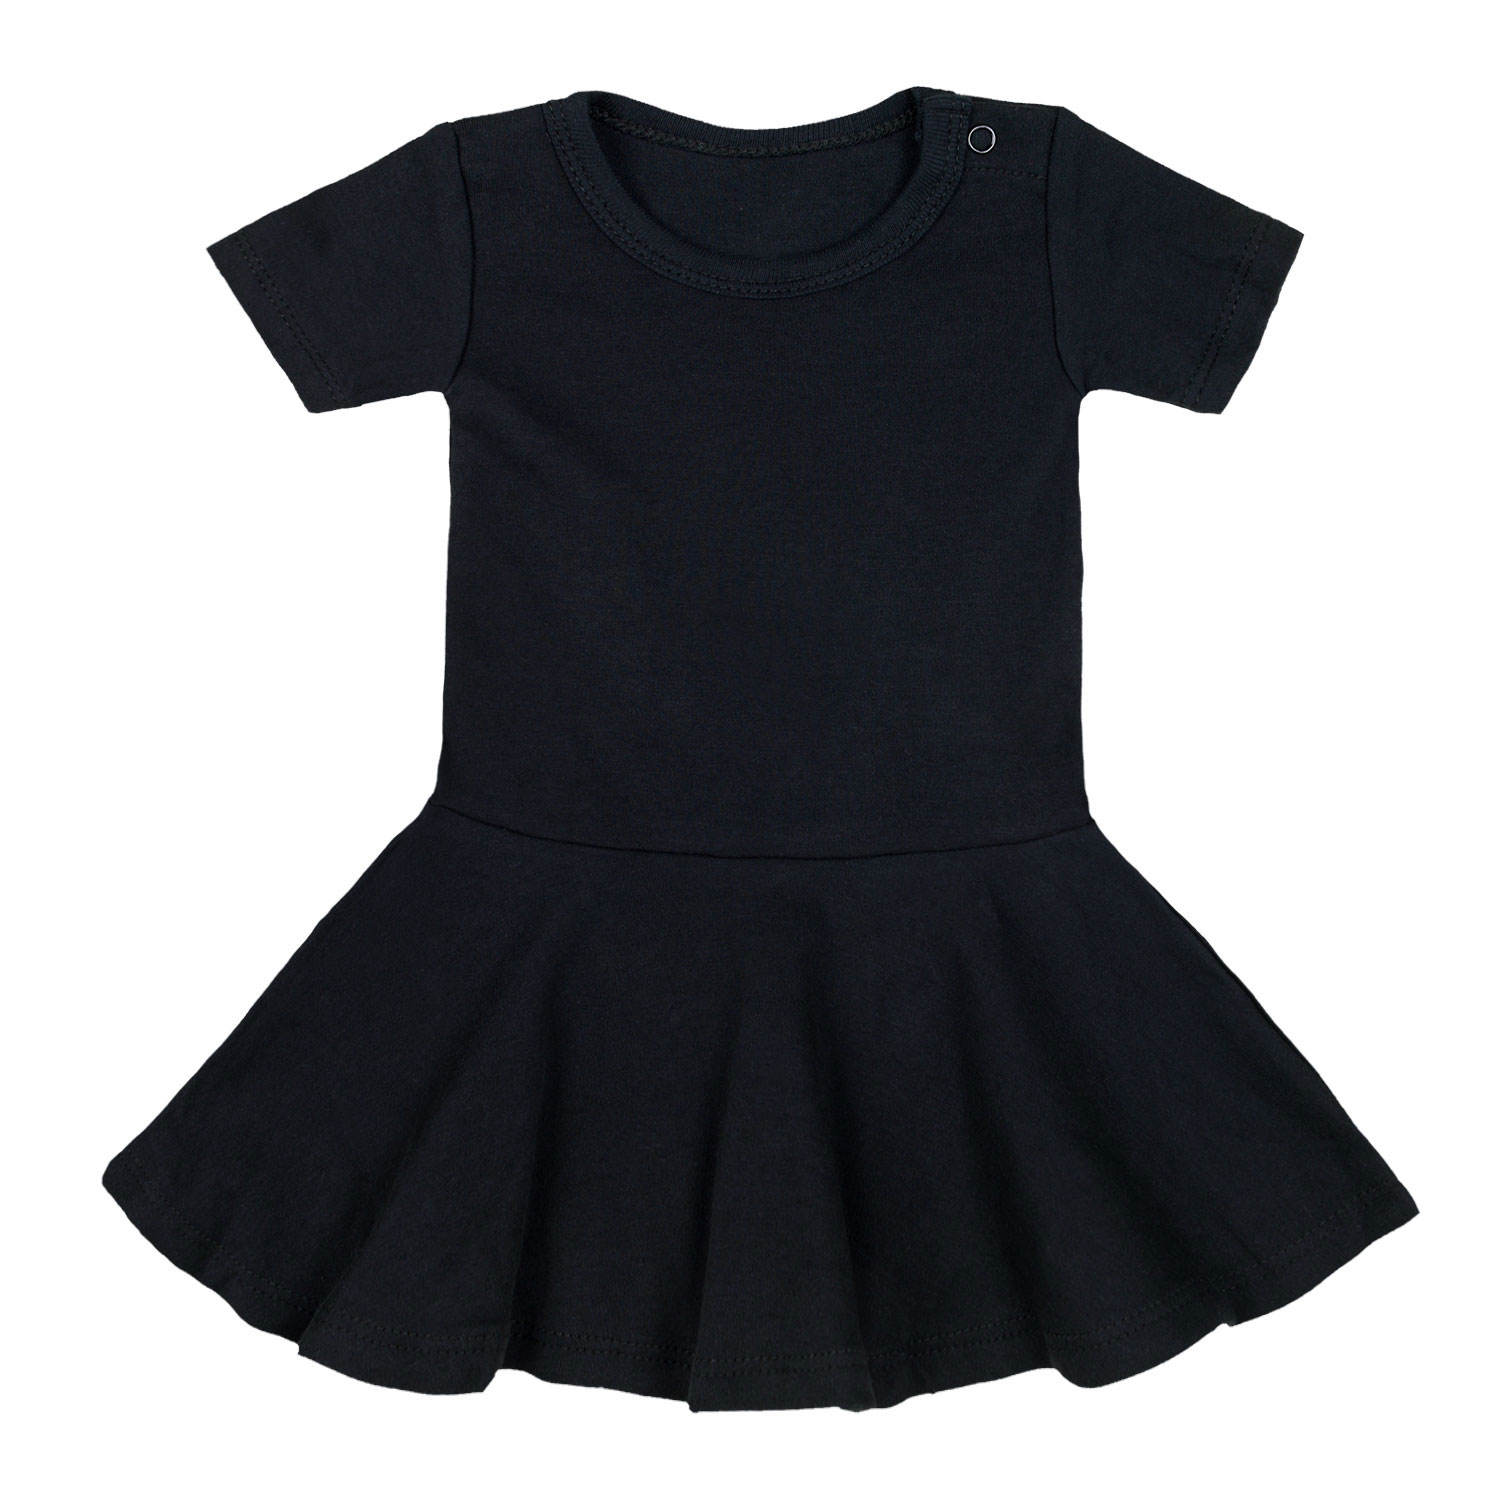 Baby Girls' Kids Frocks High Quality Black Color Princesses Tutu Skirts Short Sleeve Baby Dress